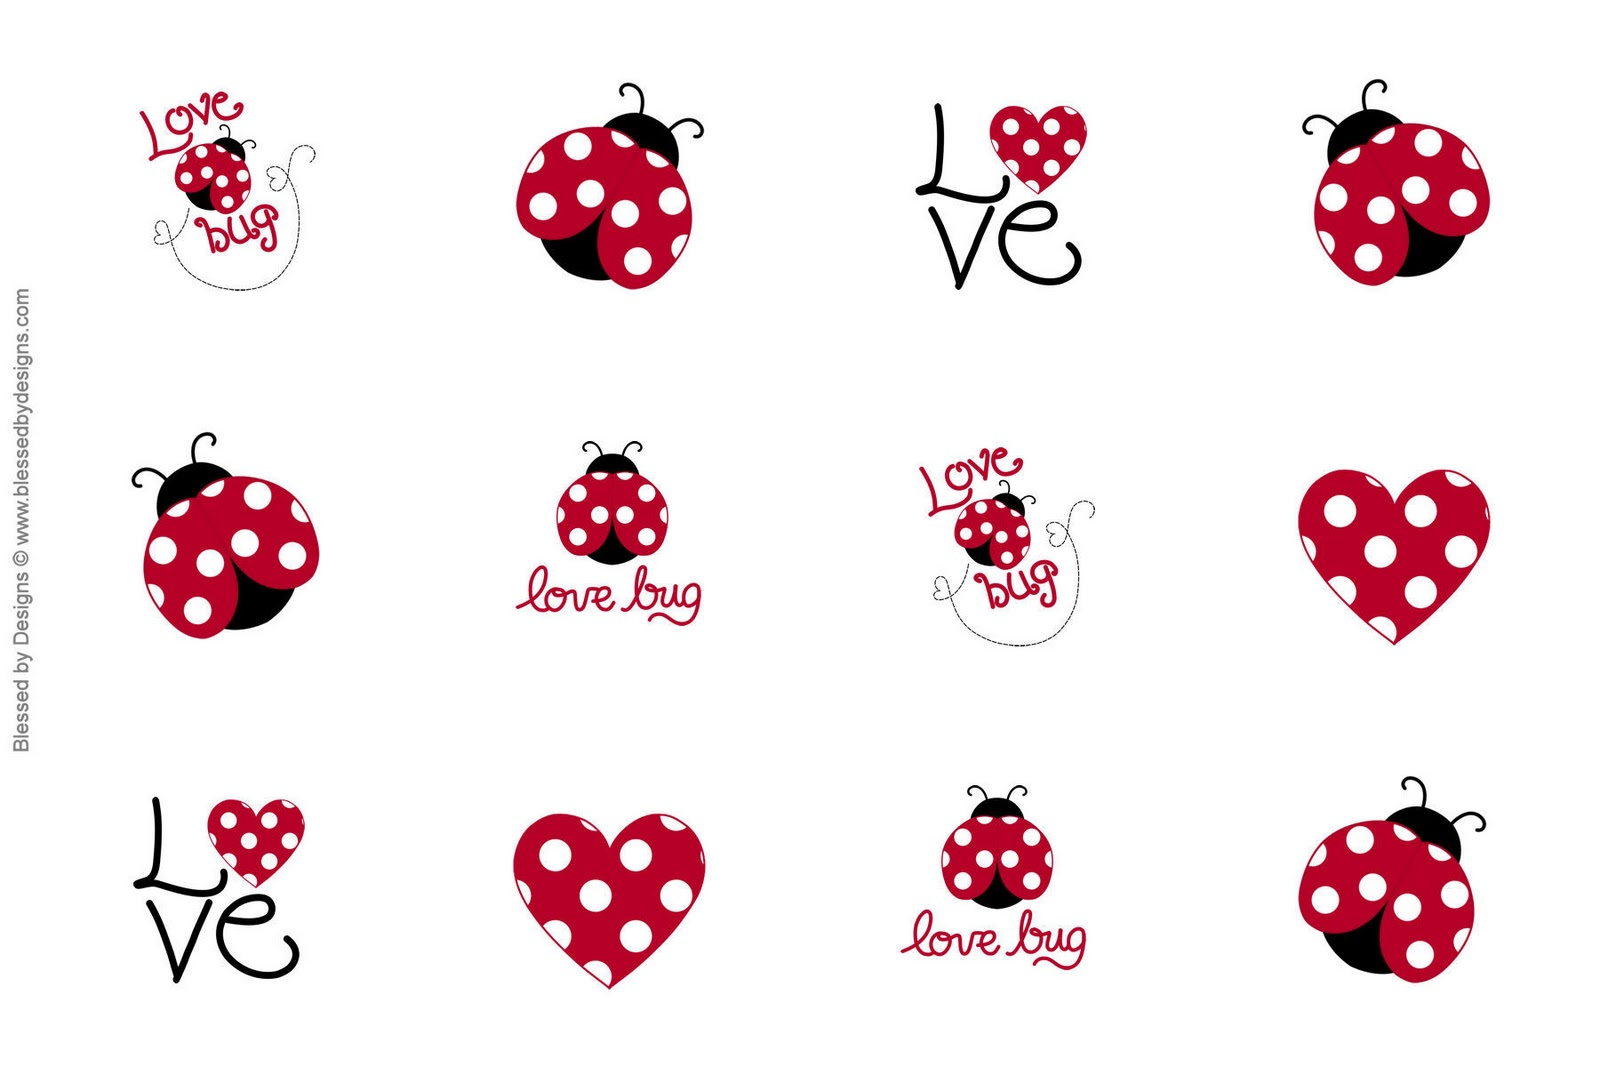 Zsbows Free Love Bug Bottle Cap Images